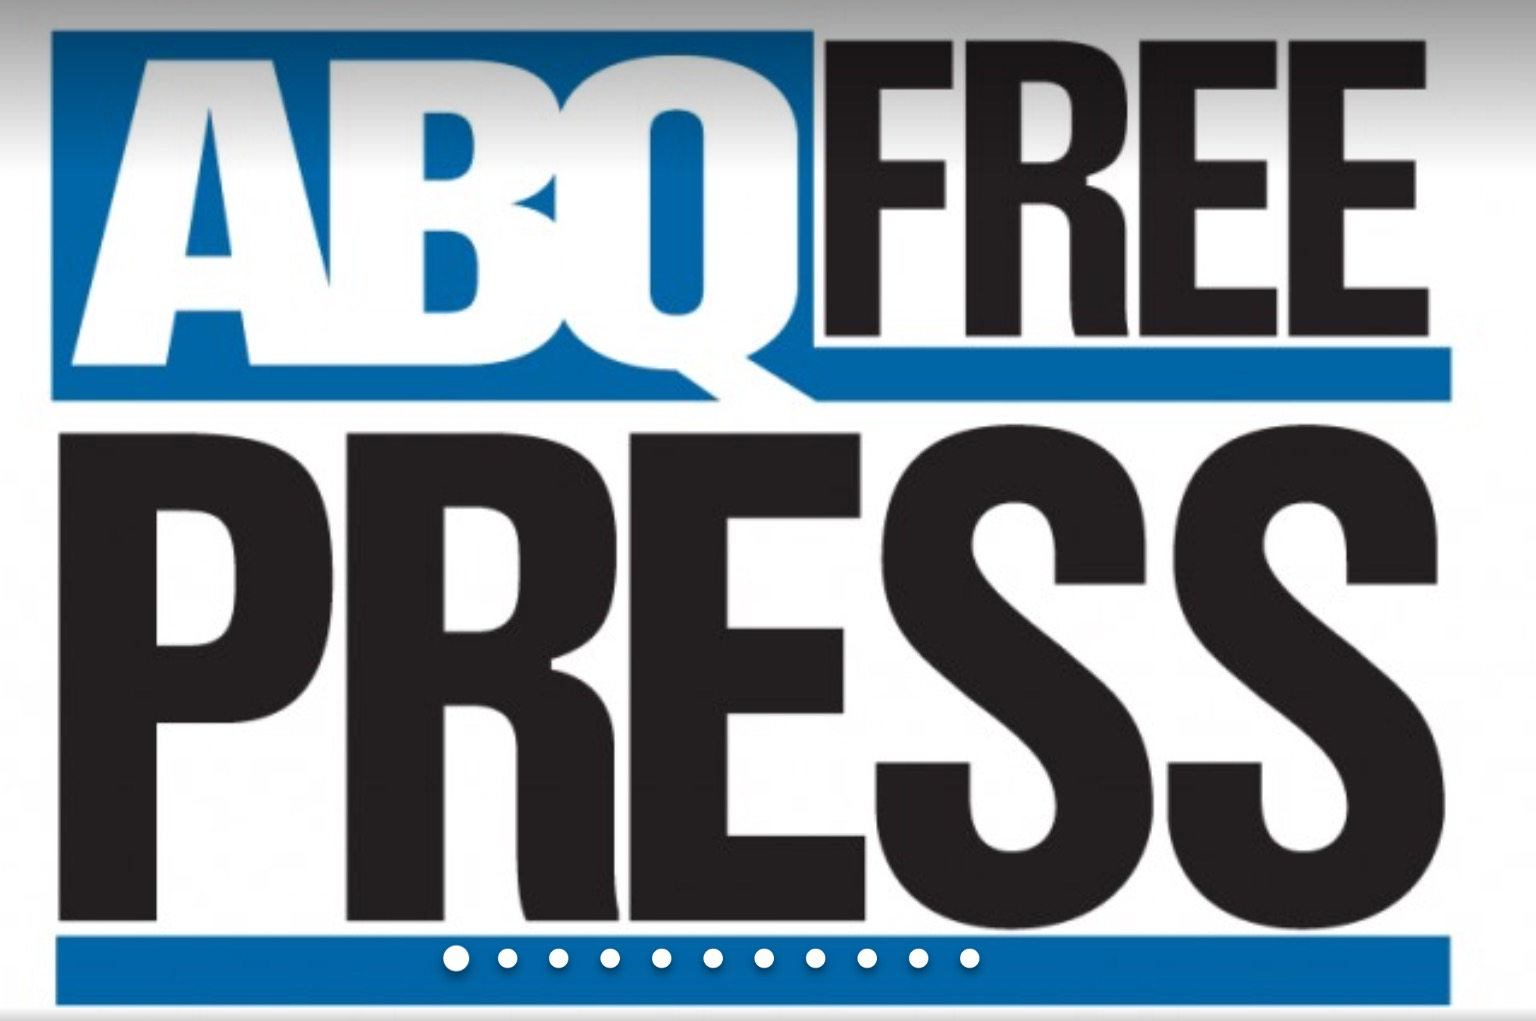 THE ALBUQUERQUE FREE PRESS